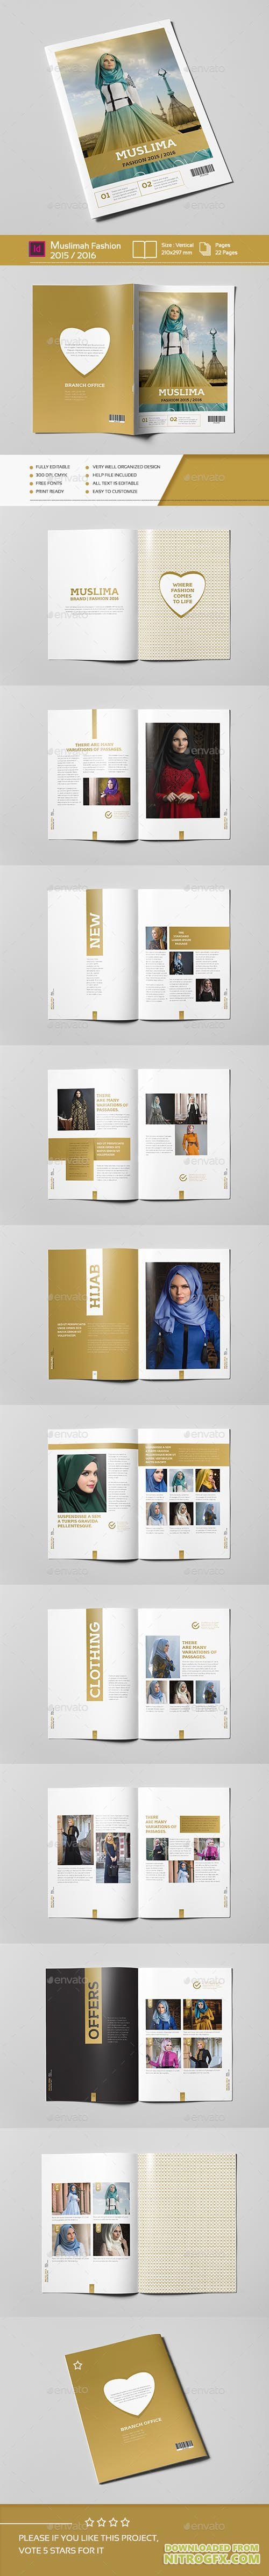 Muslimah Fashion 22 Pages A4 14031552